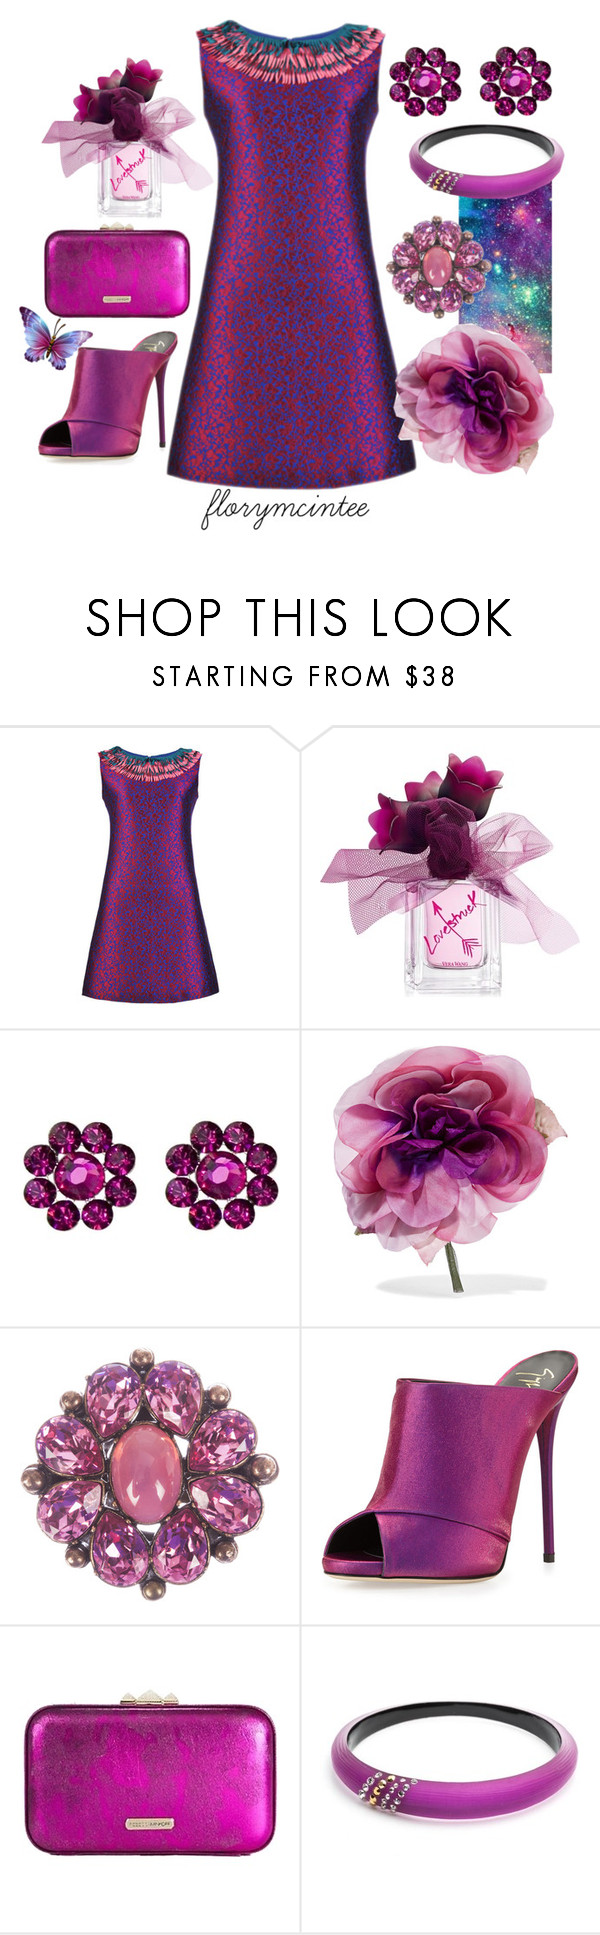 """Purple Passion"" by florymcintee ❤ liked on Polyvore featuring Vera Wang, Tarina Tarantino, Gucci, Christian Dior, Giuseppe Zanotti, Rebecca Minkoff and Alexis Bittar"